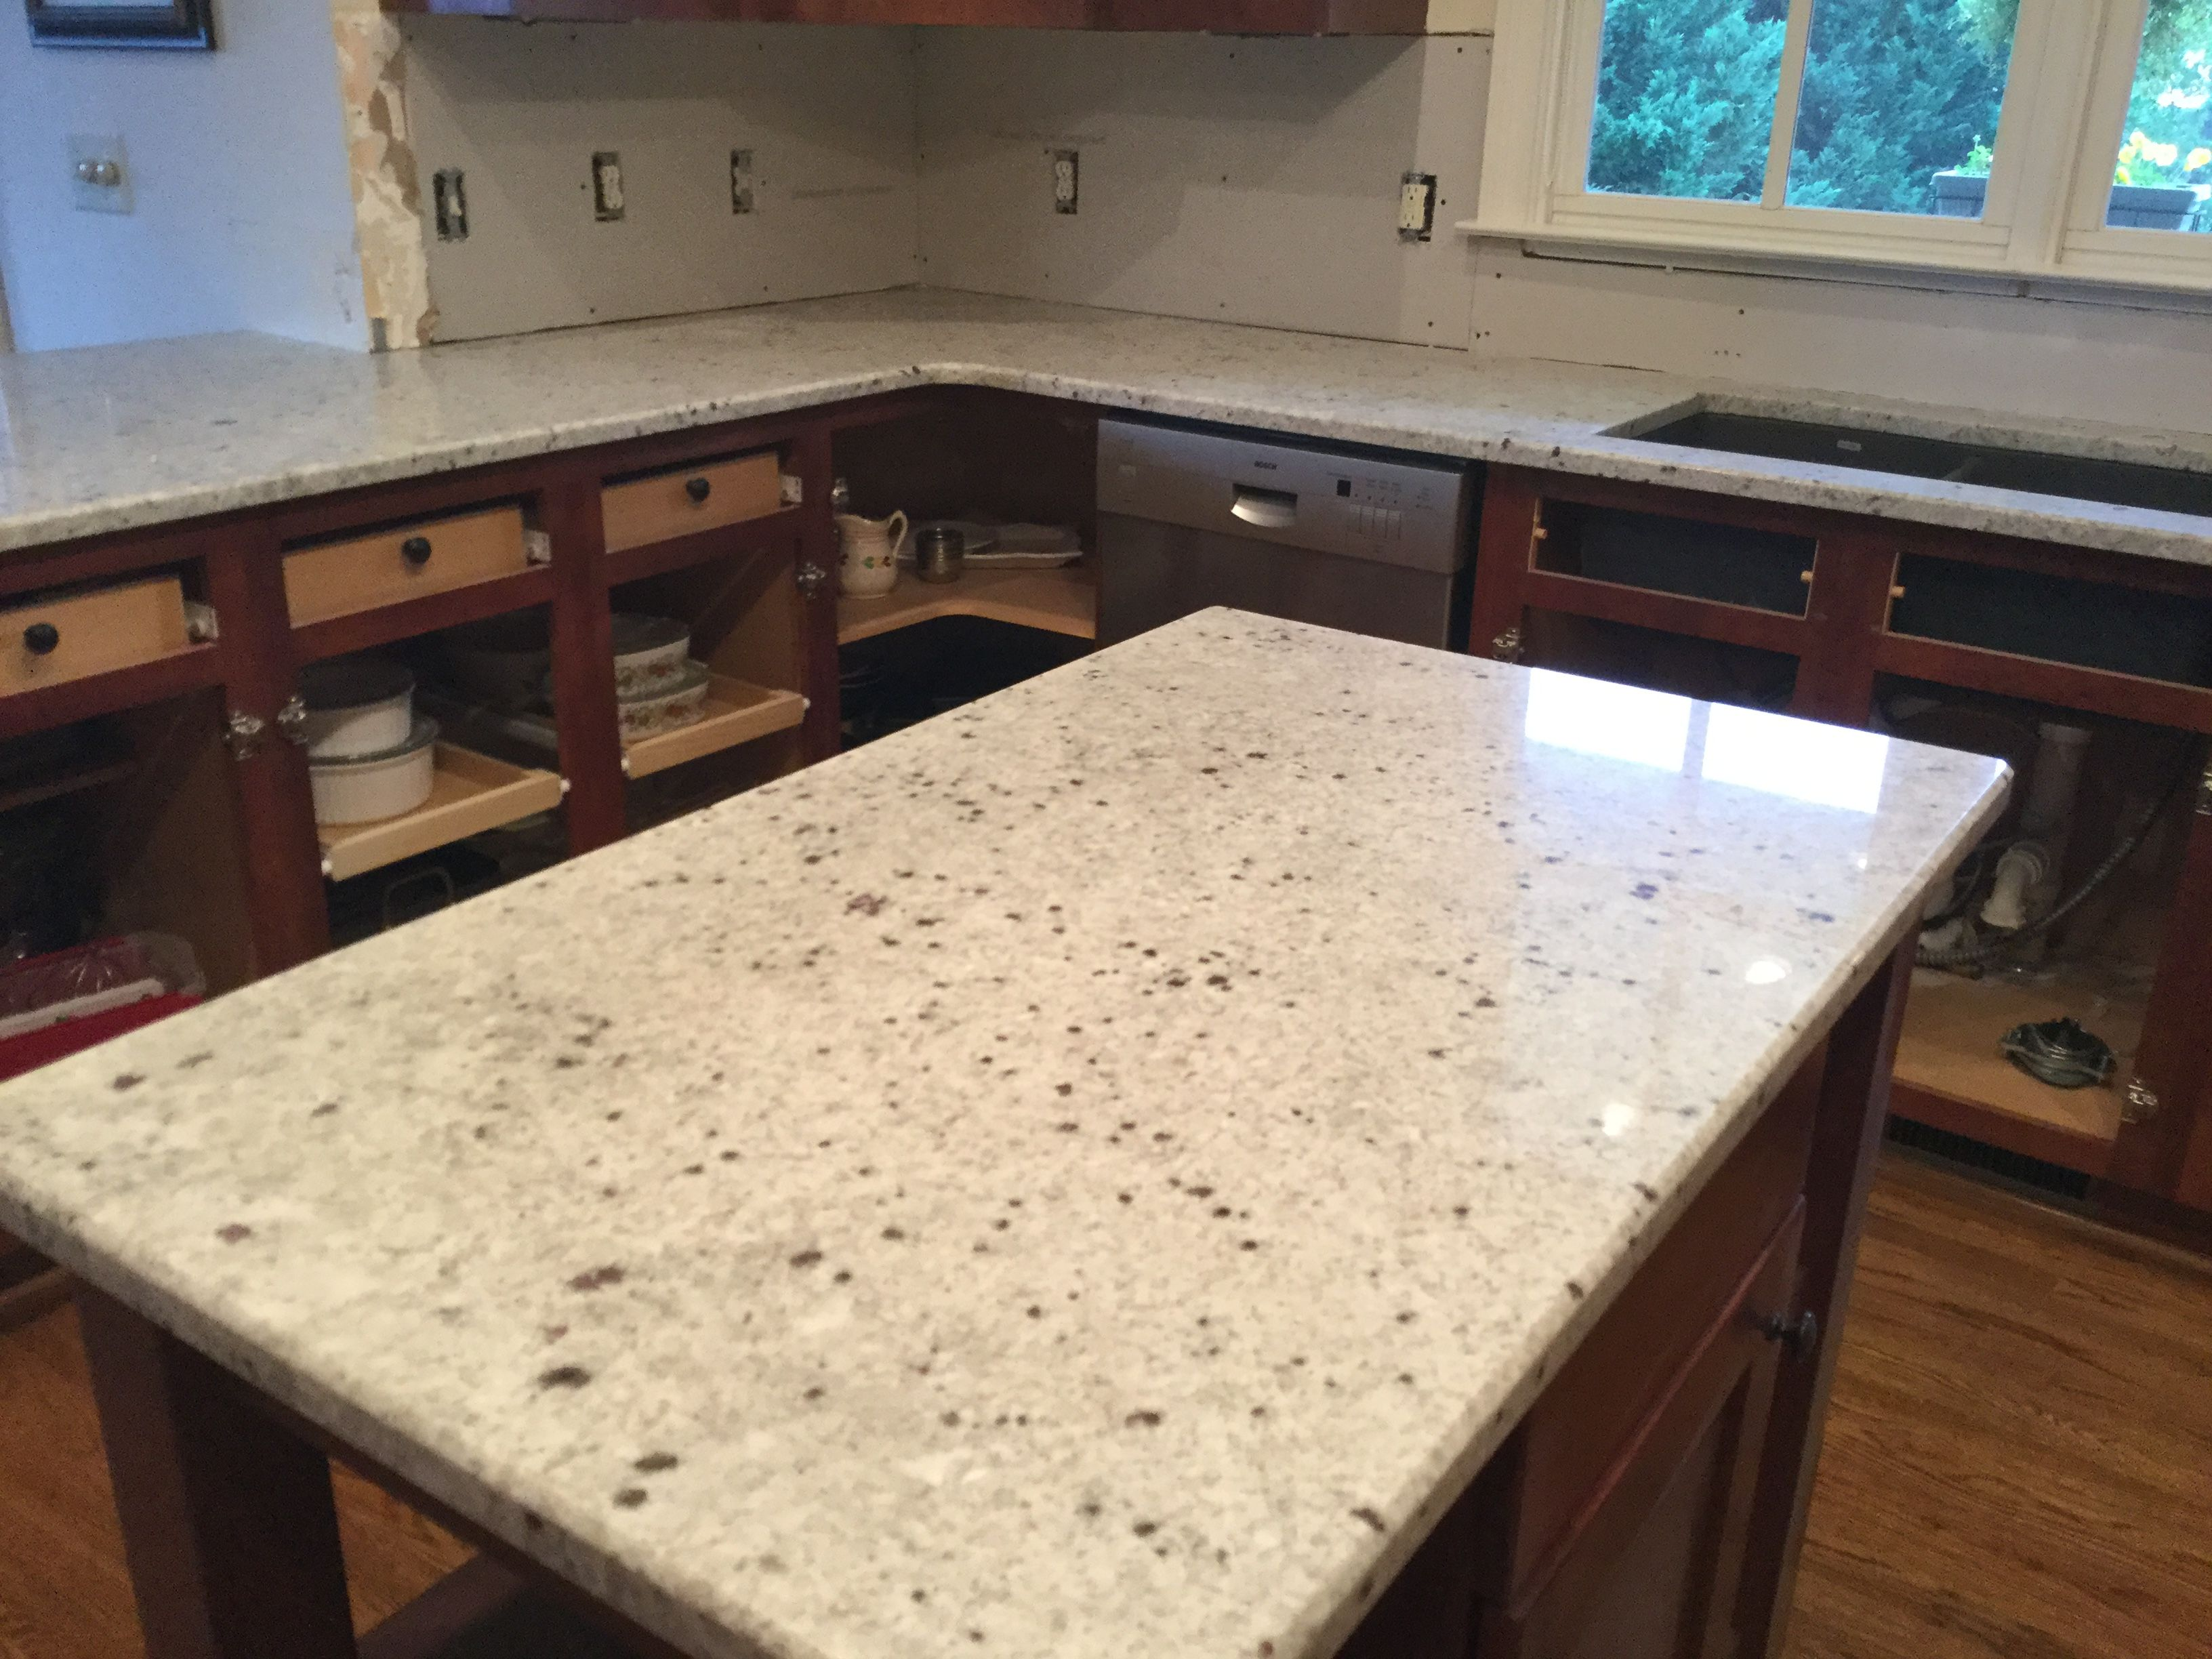 Charmant My Granite I Used Was Colonial White. I Used Crowe Custom Countertops In  Acworth GA. They Were Great To Deal With. Great Price Too. Cynthia Zayn.